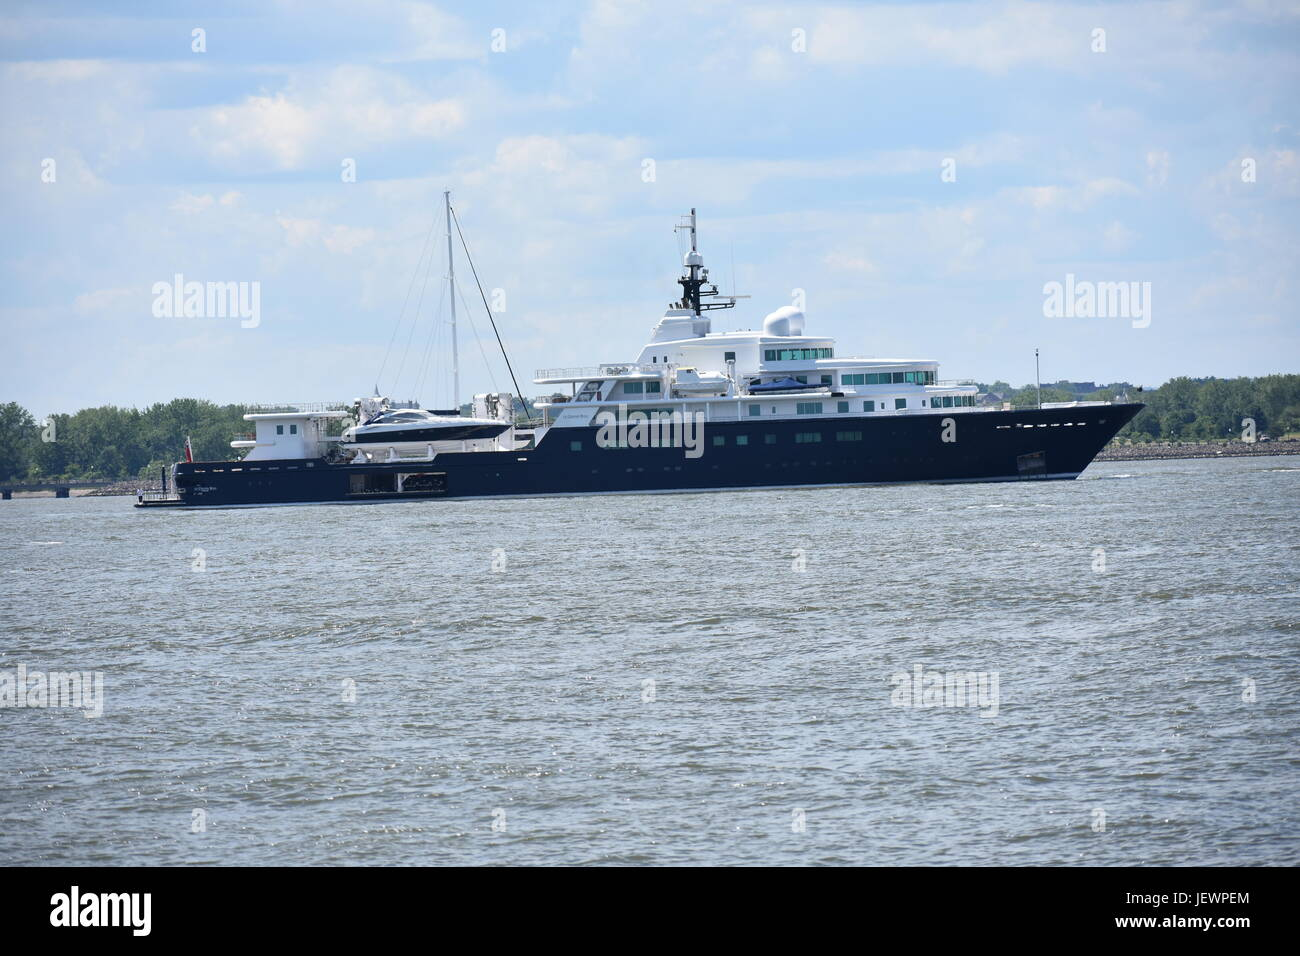 World's Largest Private Yacht 'Le Grande Bleu' docked in New York City Harbor - Stock Image